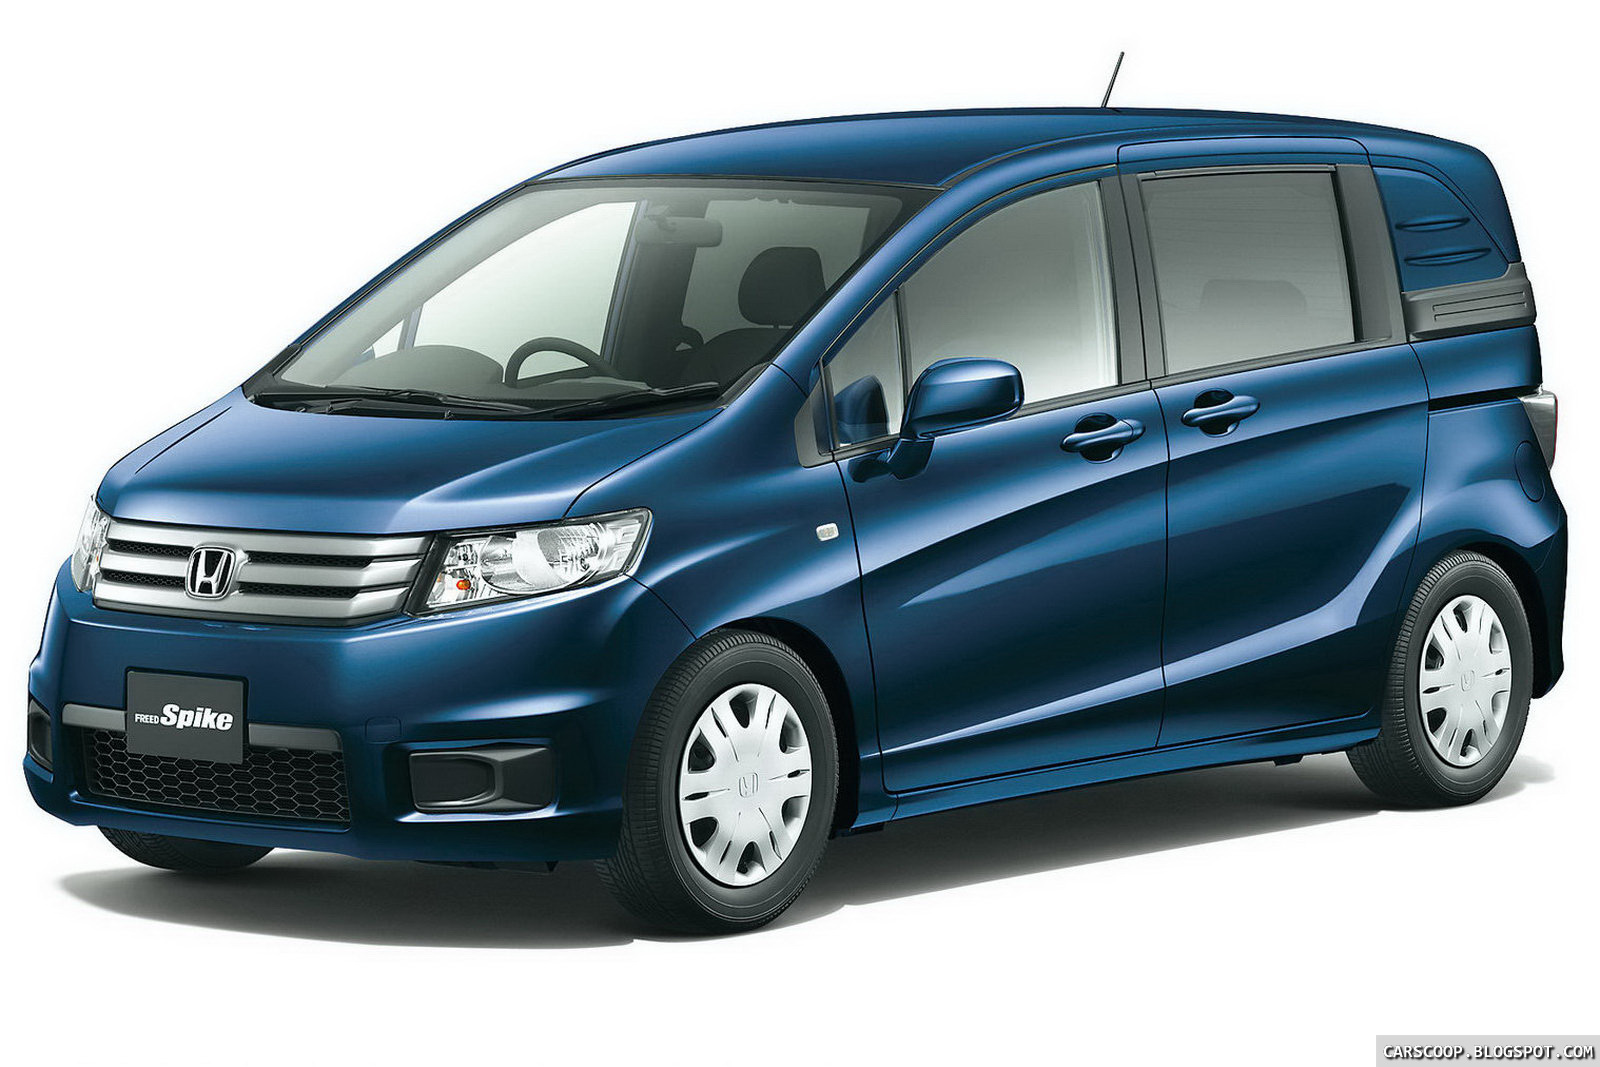 Minivan Japan Honda Odyssey 2005 With Safety Systems Highlighted Overview For The Segment In Terms Of Performance Car Like Ride And Handling Top Level